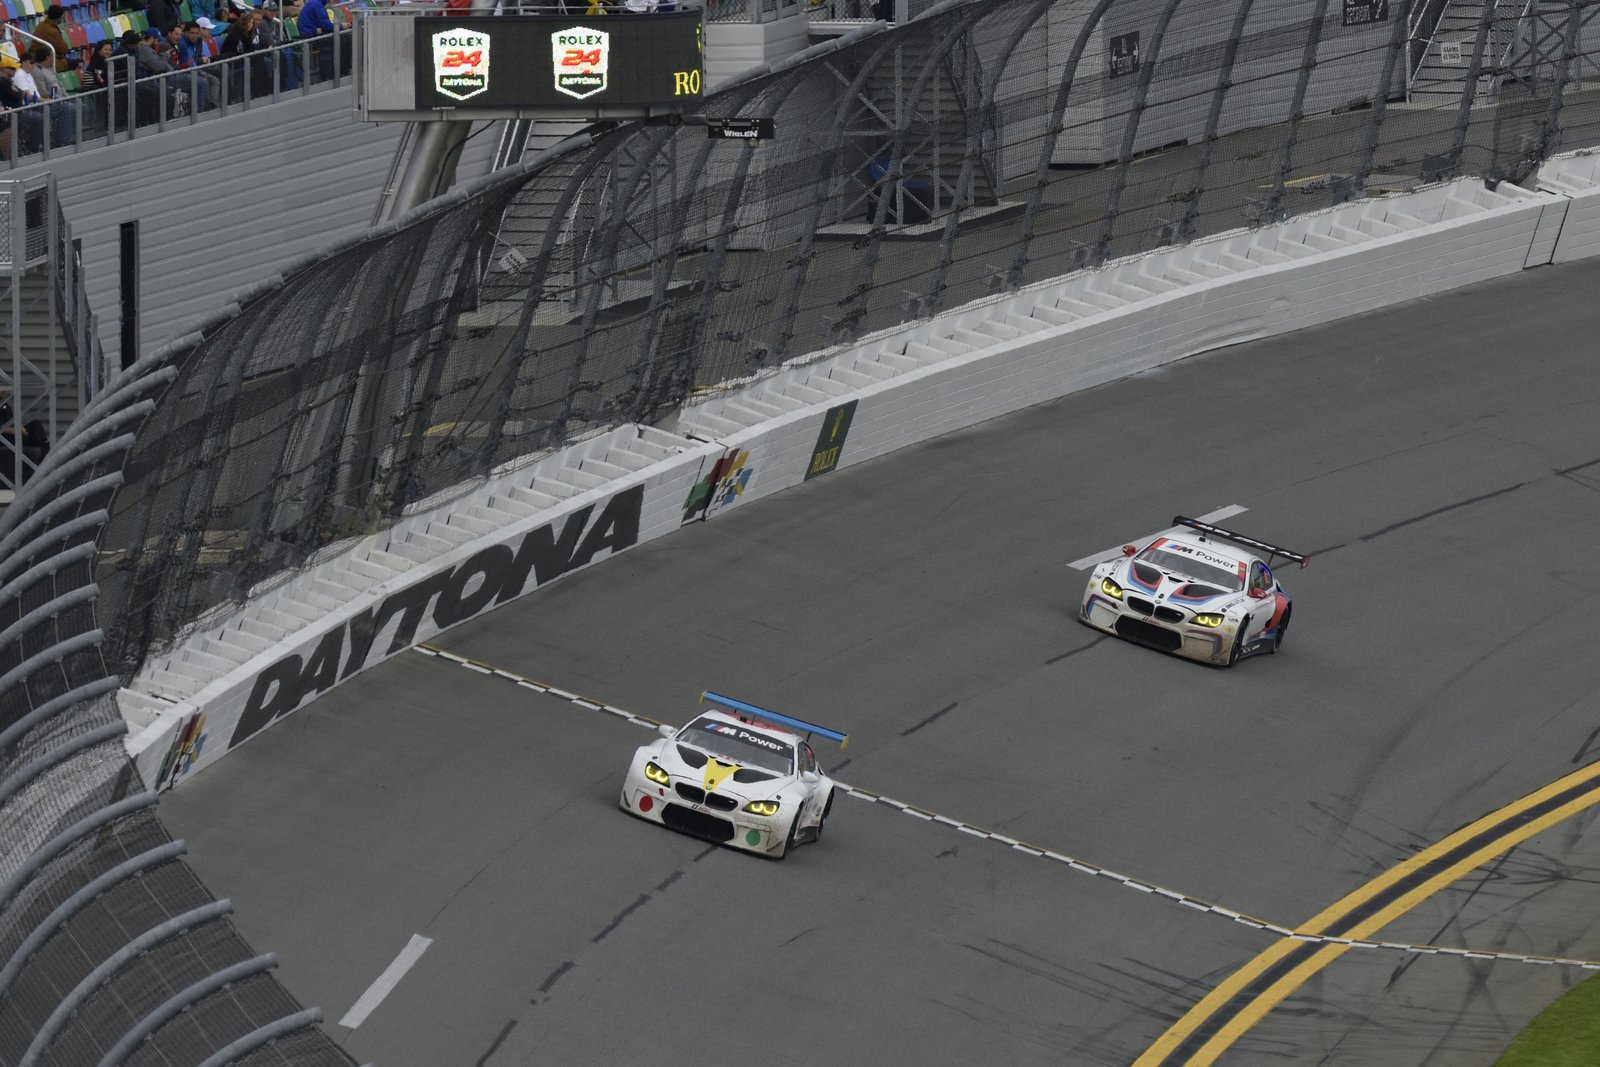 At the start of the race, the BMW M6 GTLM #24 keeps pace with #19. Unfortunately, vibration at the rear of the car takes it out of commission after 14 laps around the Daytona International Speedway.  Photo 8 of 12 in John Baldessari Blazes a Trail at the Daytona International Speedway With BMW Art Car #19